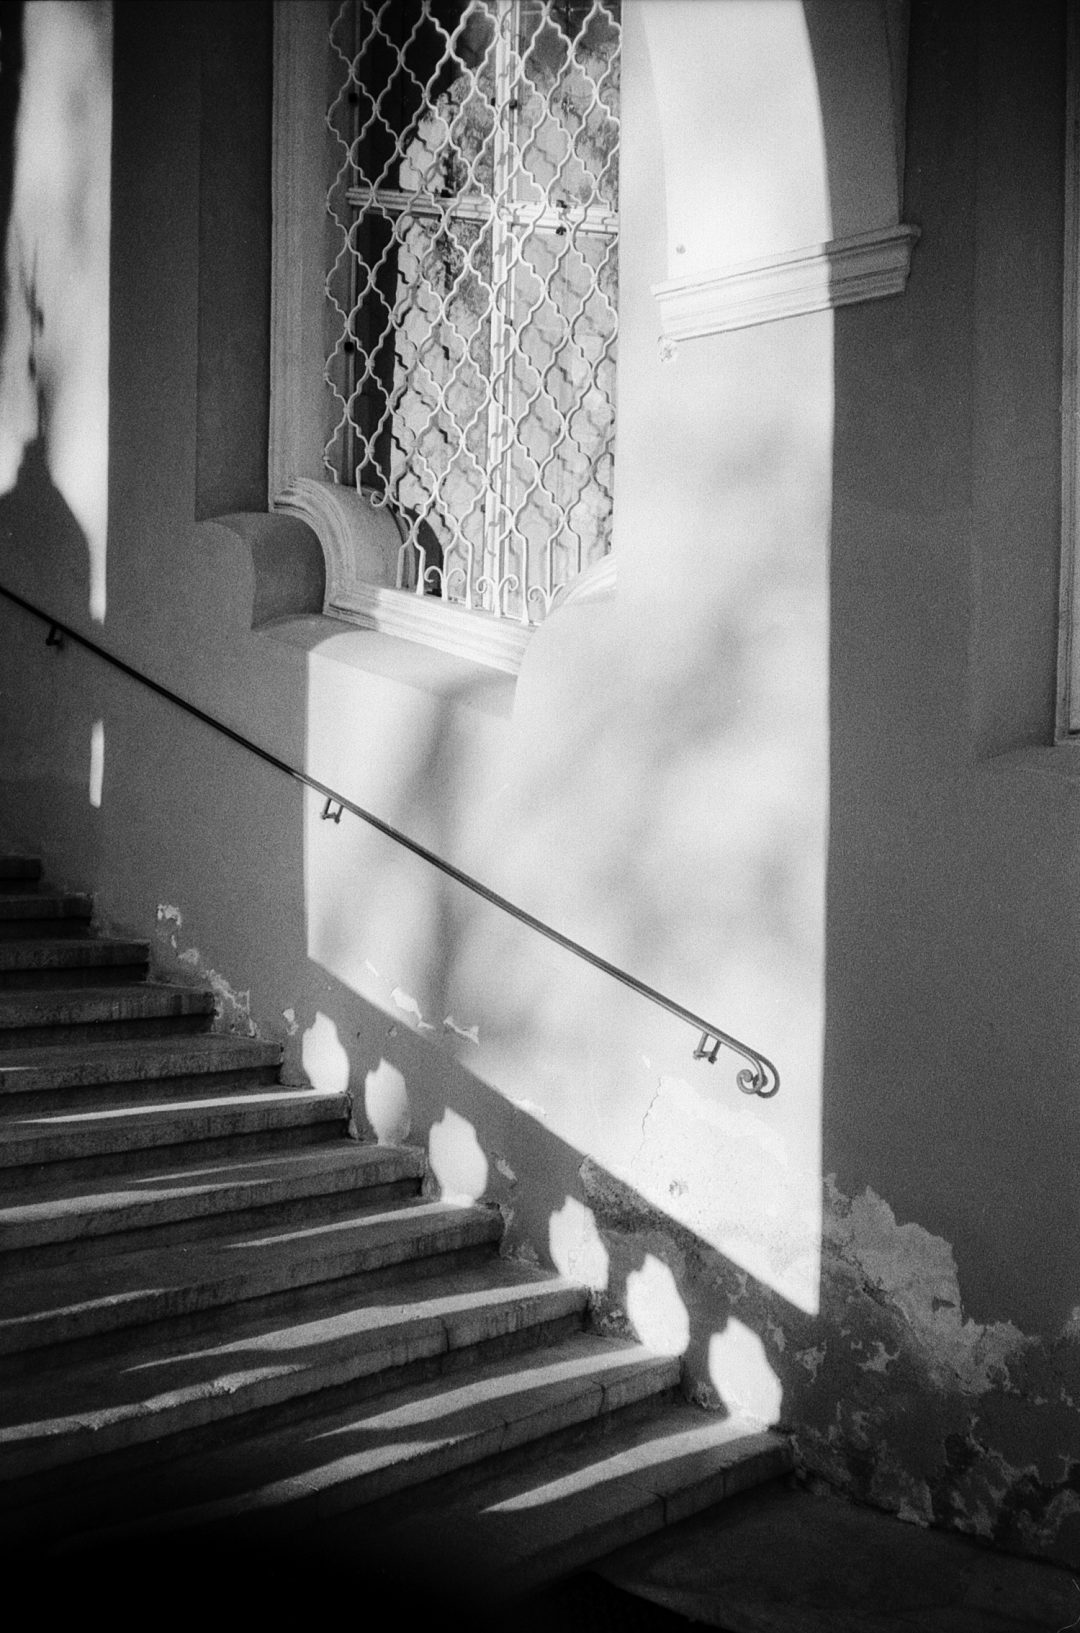 #107 Light on the staircase, Kalvarienberg Graz